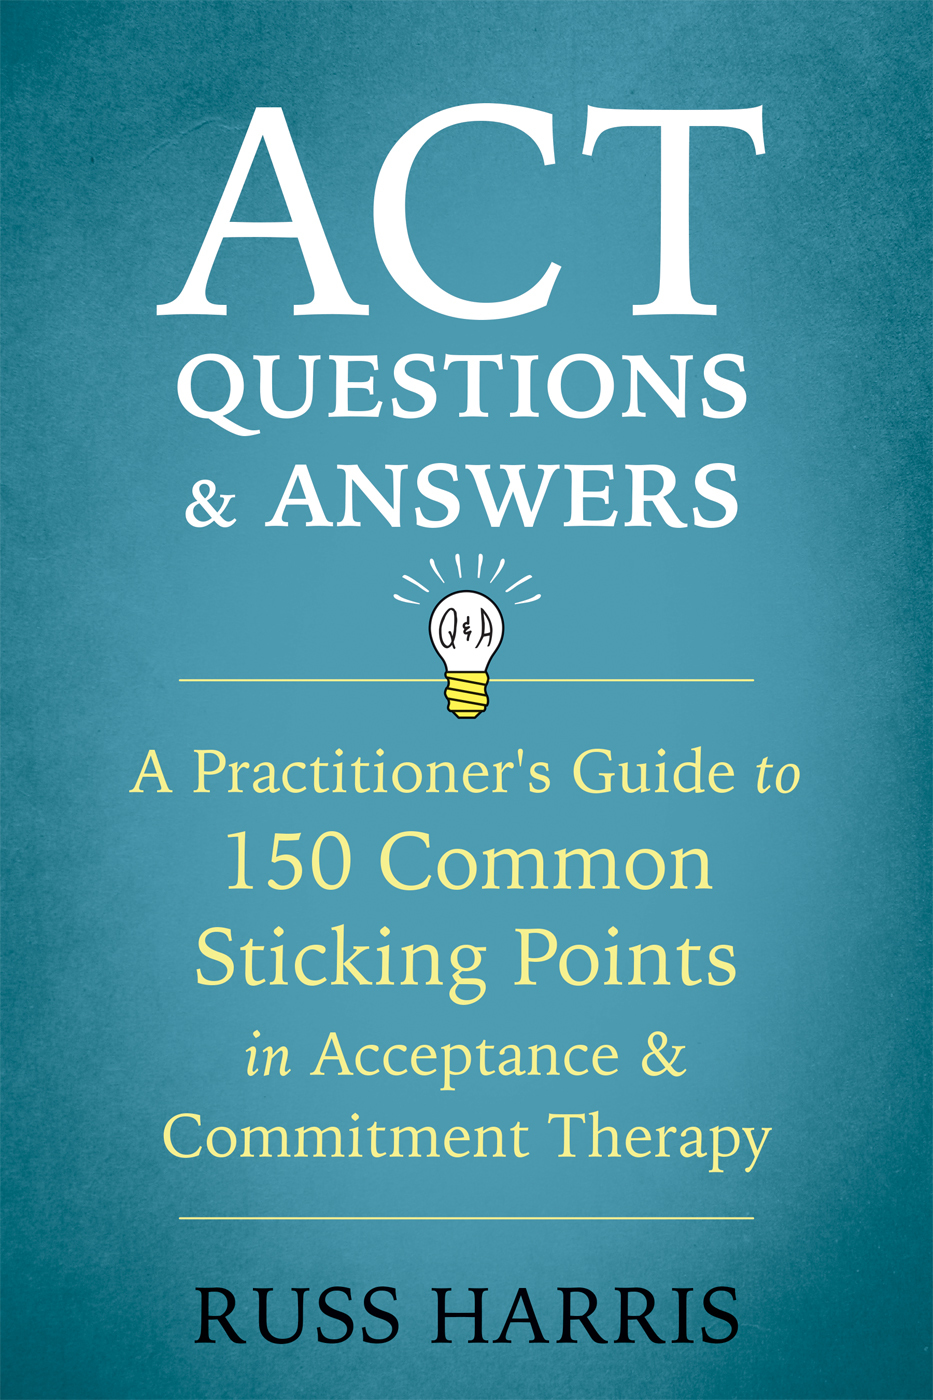 ACT Questions and Answers A Practitioner's Guide to 150 Common Sticking Points in Acceptance and Commitment Therapy